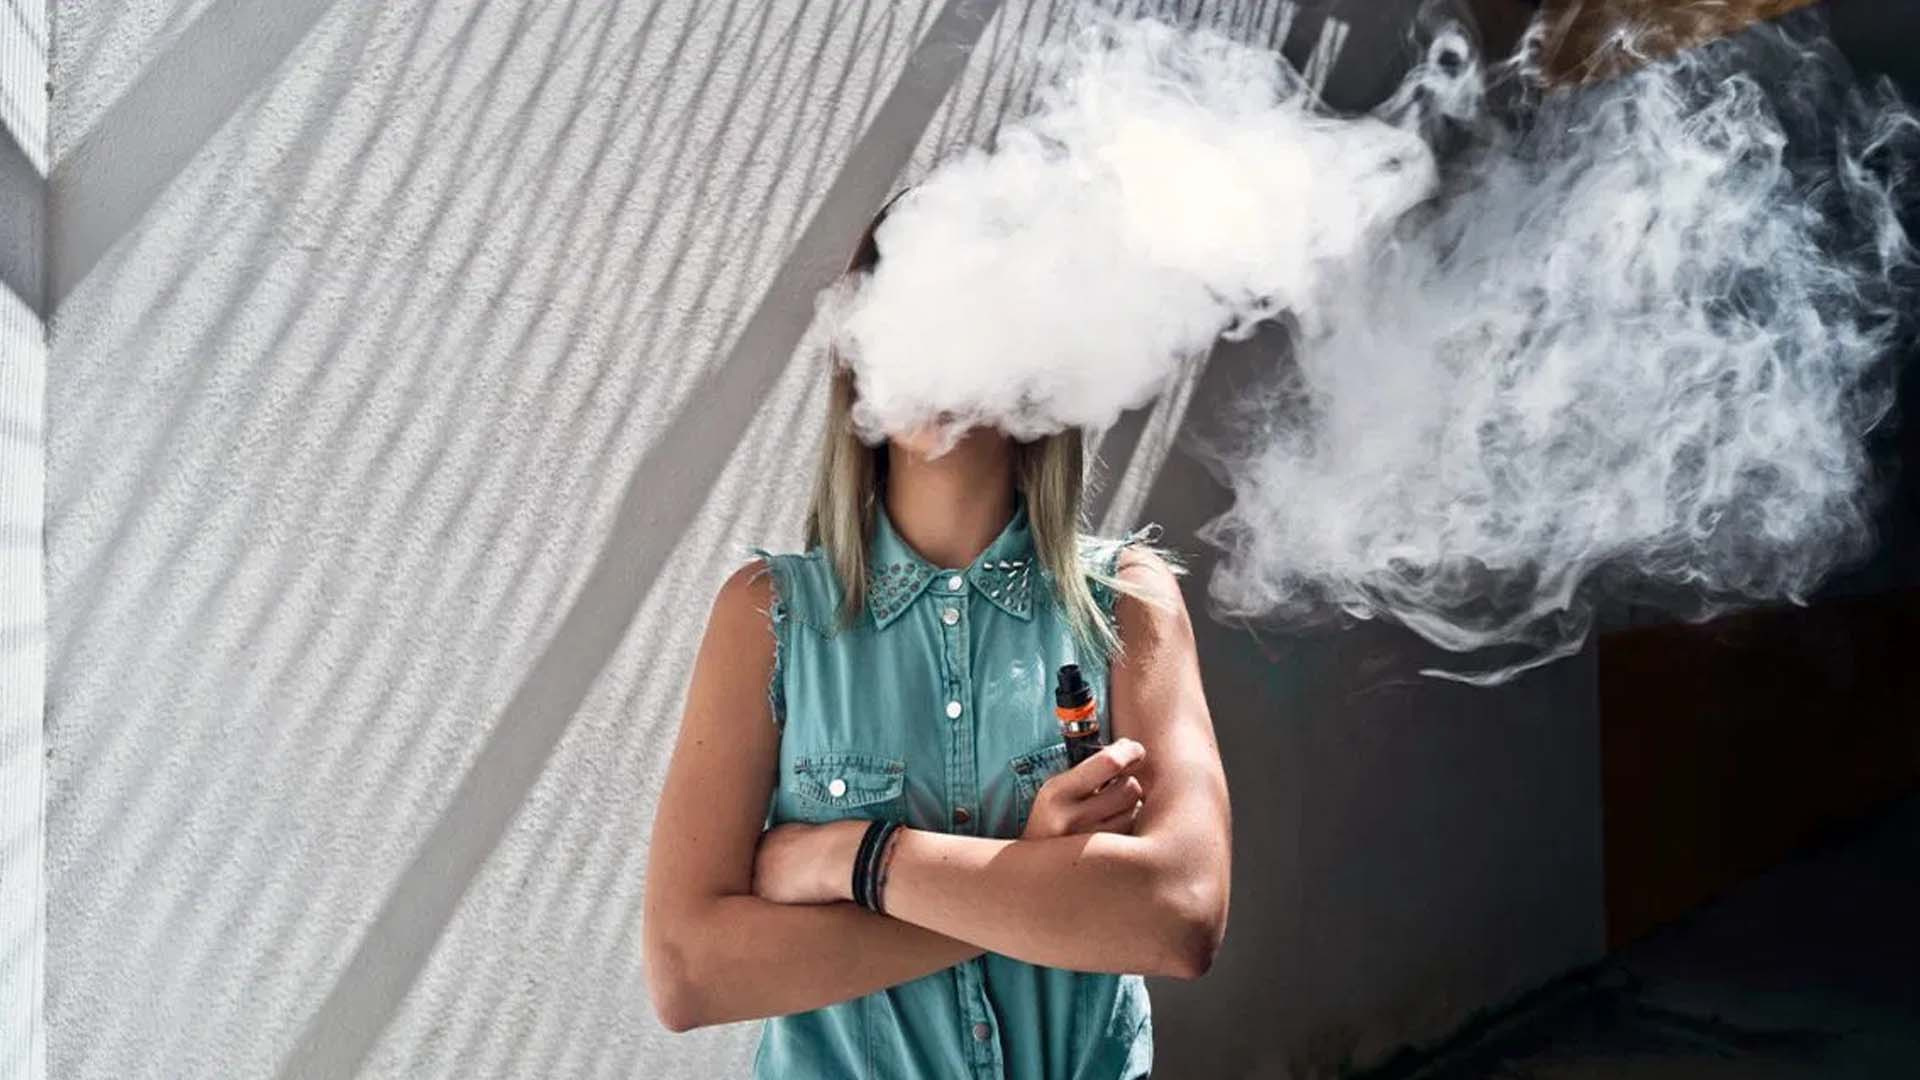 Image of a woman vaping outside